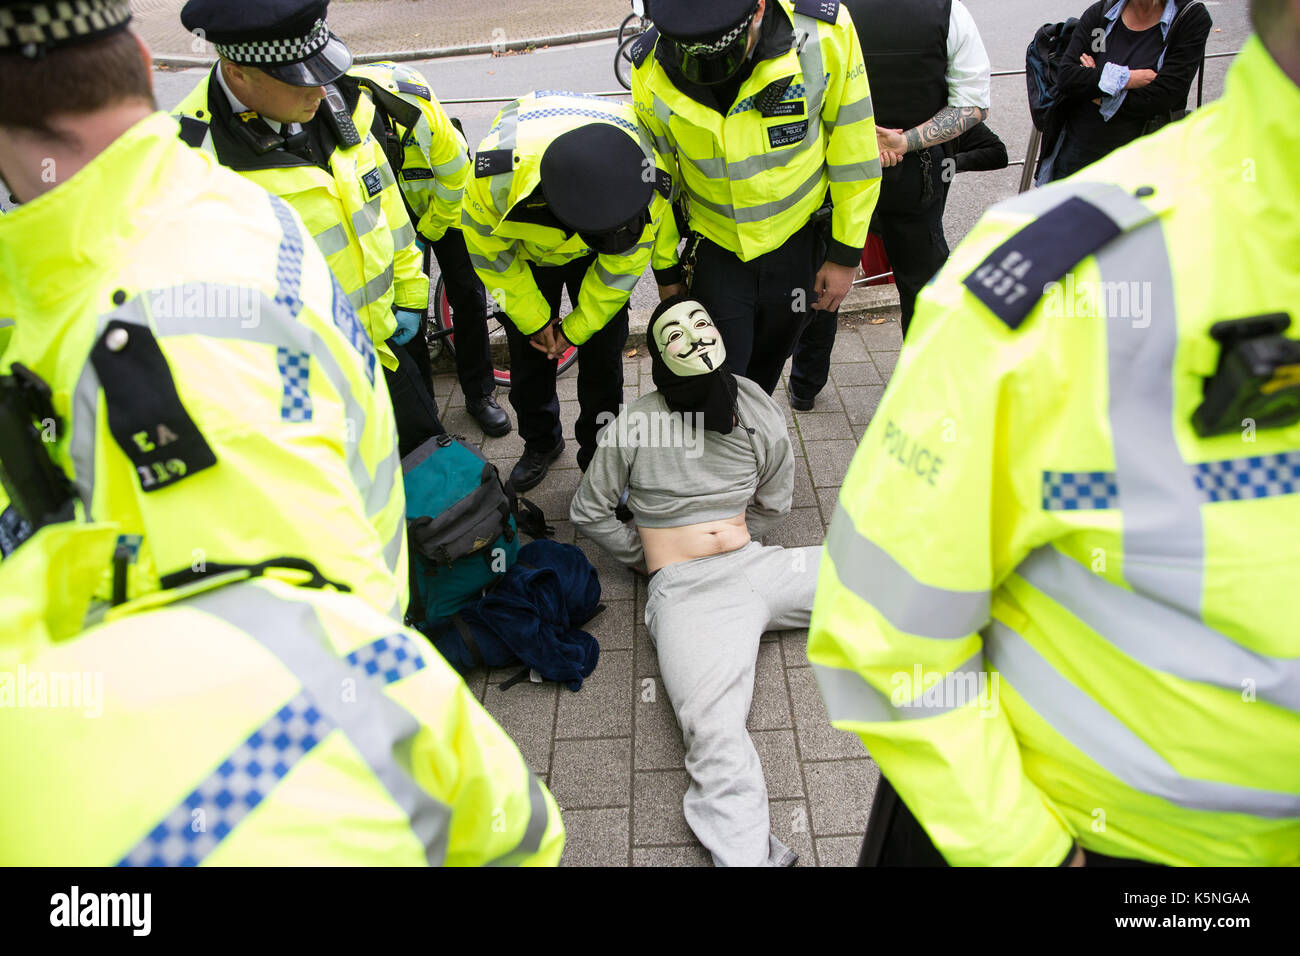 London, UK. 9th September, 2017. Police officers stop and search a man wearing a Guy Fawkes mask during a protest by activists from many different campaign and faith groups outside the ExCel Centre against the arms trade and the arms fair to be held at the venue next week. The man was released following the search because nothing was found. DSEI is the world's largest arms fair and military delegations invited by the British government include states named by the Foreign Office as a 'human rights priority' , namely Bahrain, Colombia, Egypt, Pakistan and Saudi Arabia. Credit: Mark Kerri - Stock Image